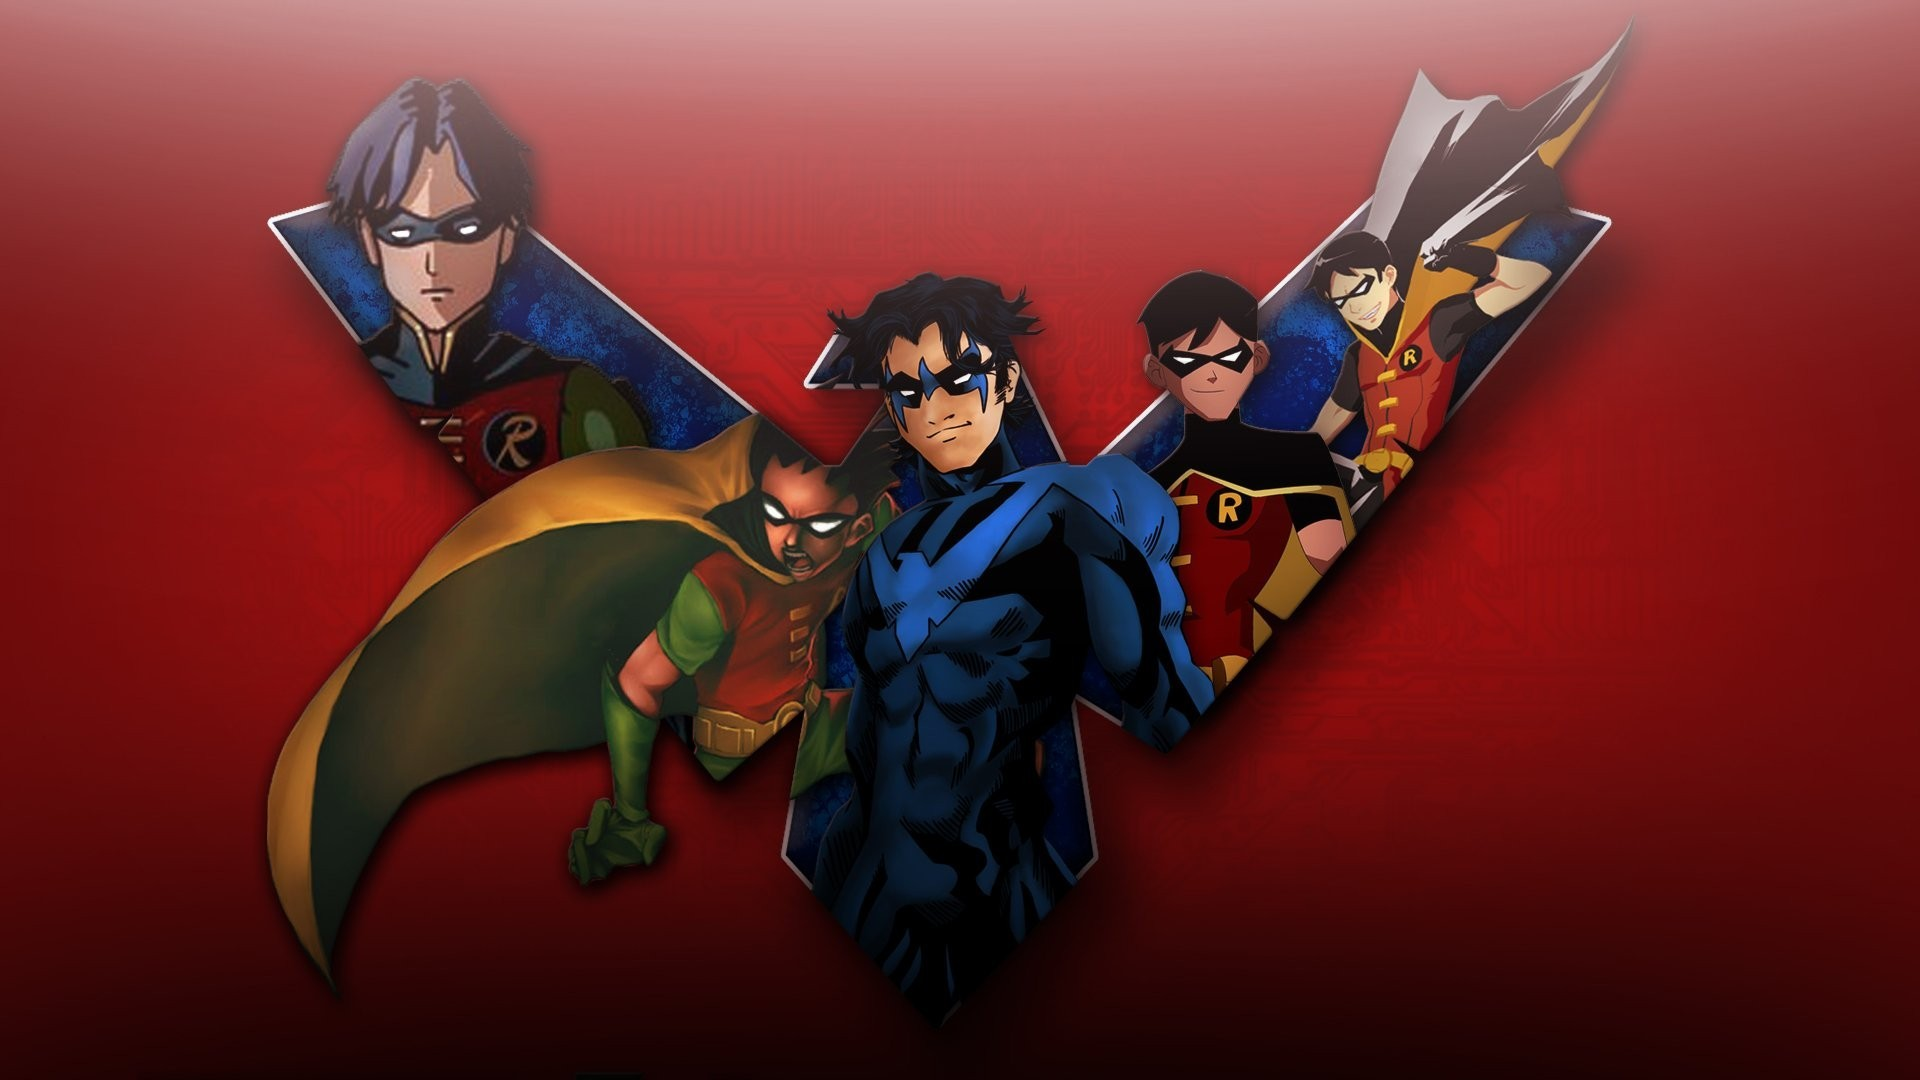 Res: 1920x1080, nightwing wallpaper #231254